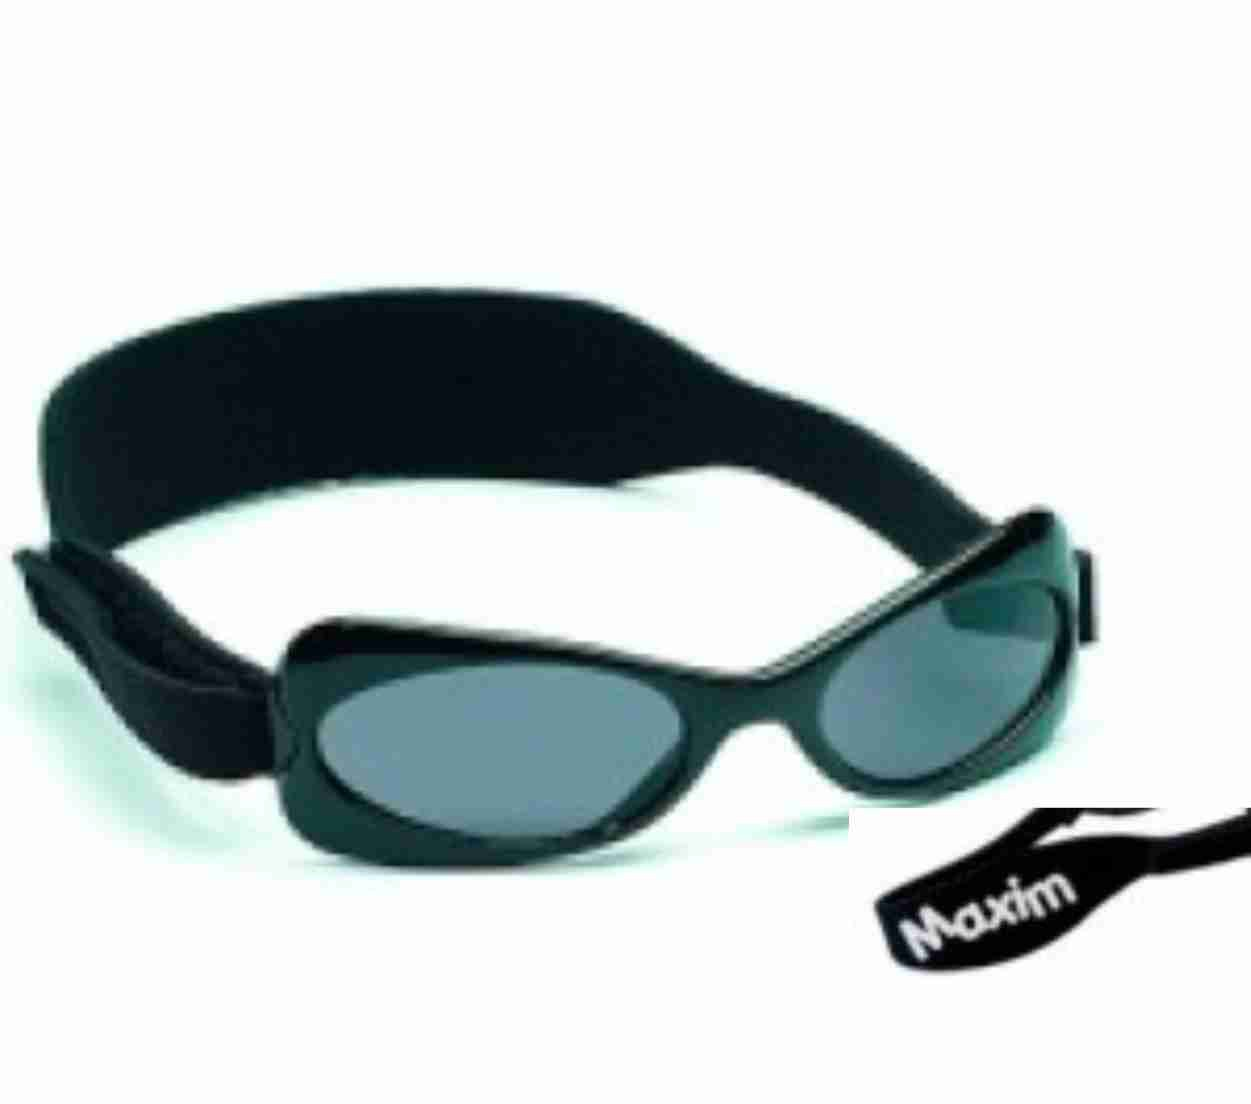 Sunglasses for kids RKS Black Frame (2-5 years)